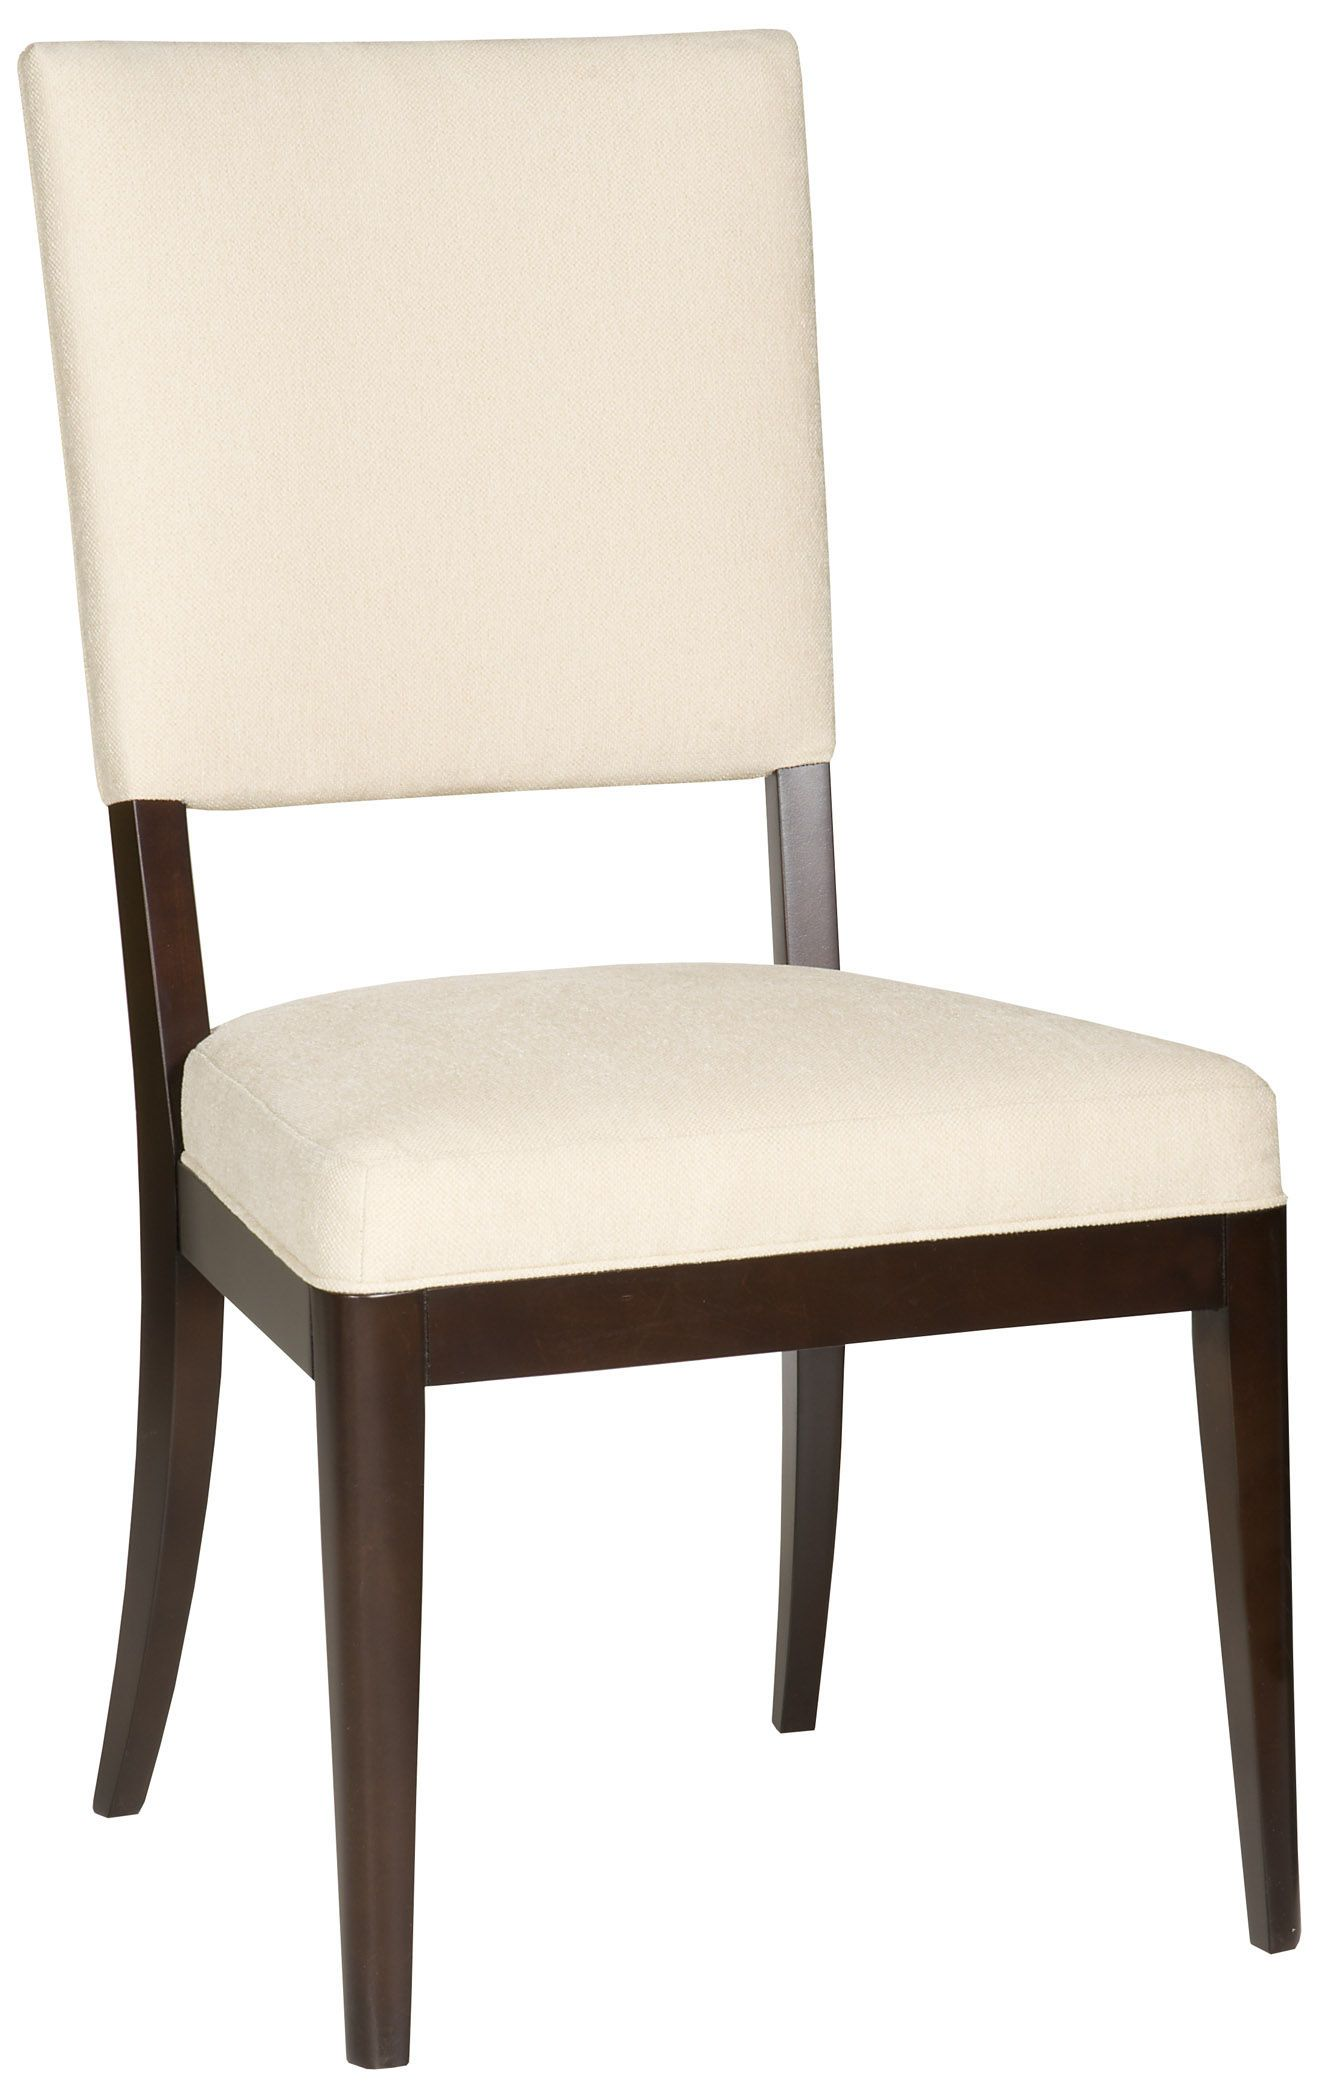 High Quality Vanguard Dining Room Juliet Side Chair V12 CH   Vanguard Furniture   Conover,  NC